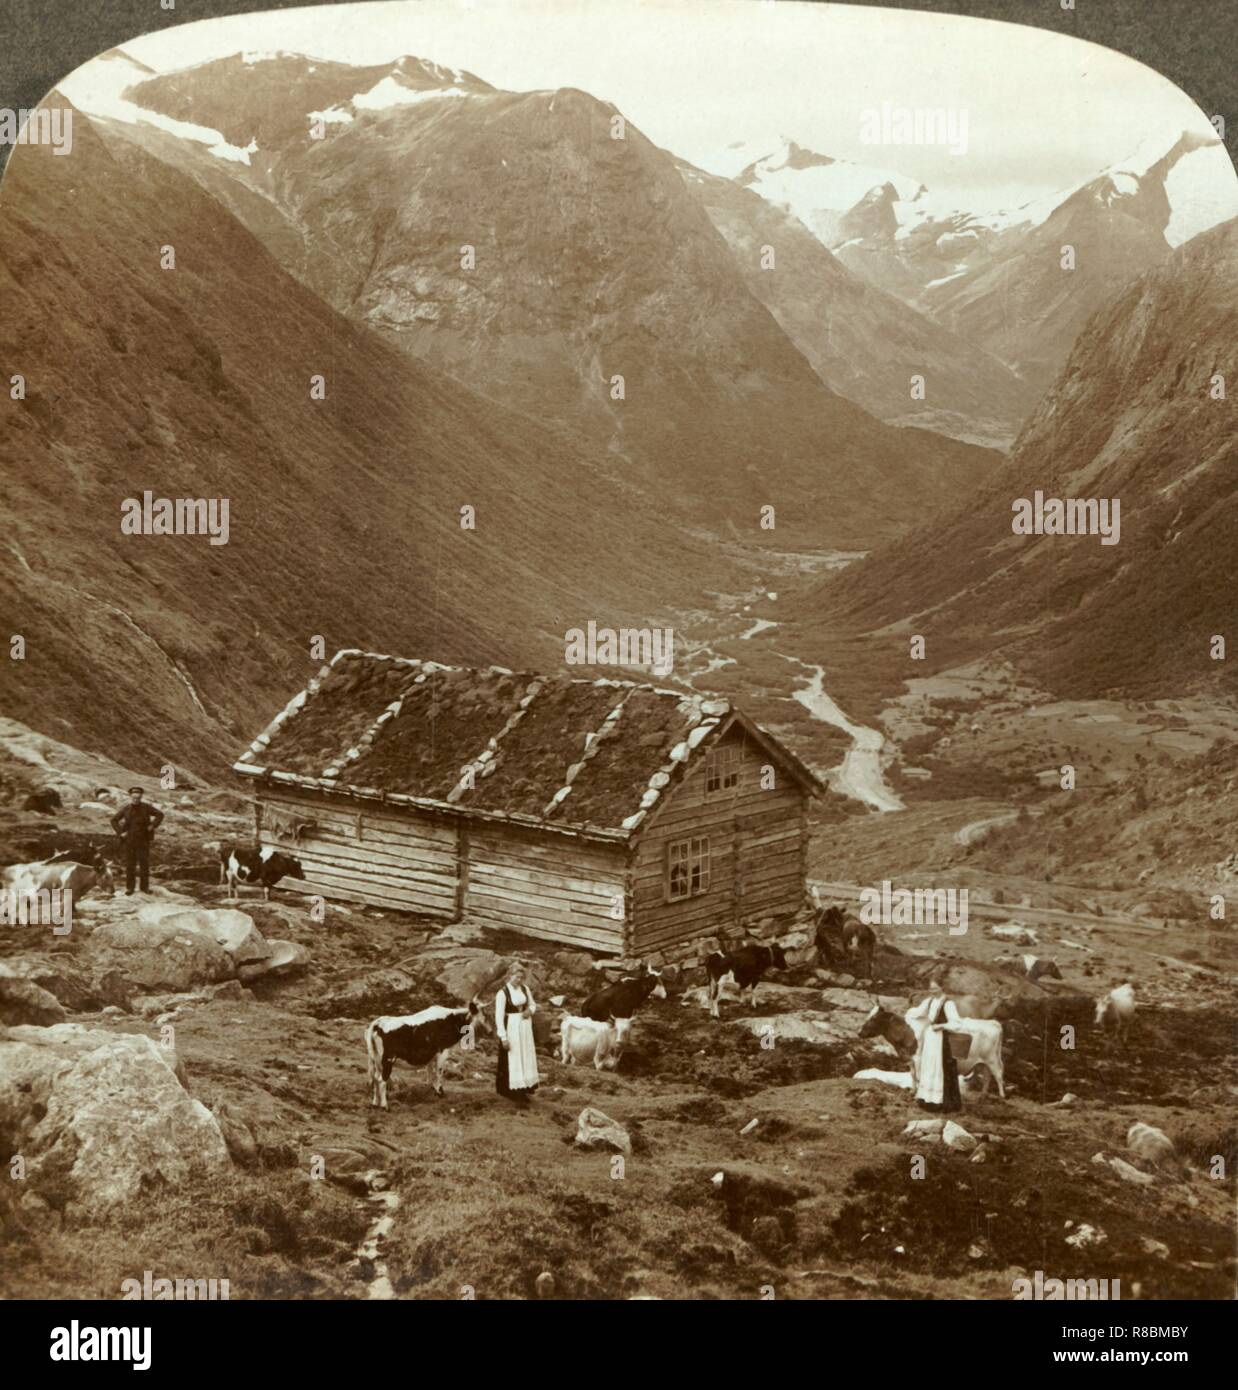 """'From the mountain inn at Vidde saeter down the Vidde valley - Mt. Skaala in right distance', c1905. From """"The Underwood Travel Library - Norway"""". [Underwood & Underwood, London ] - Stock Image"""